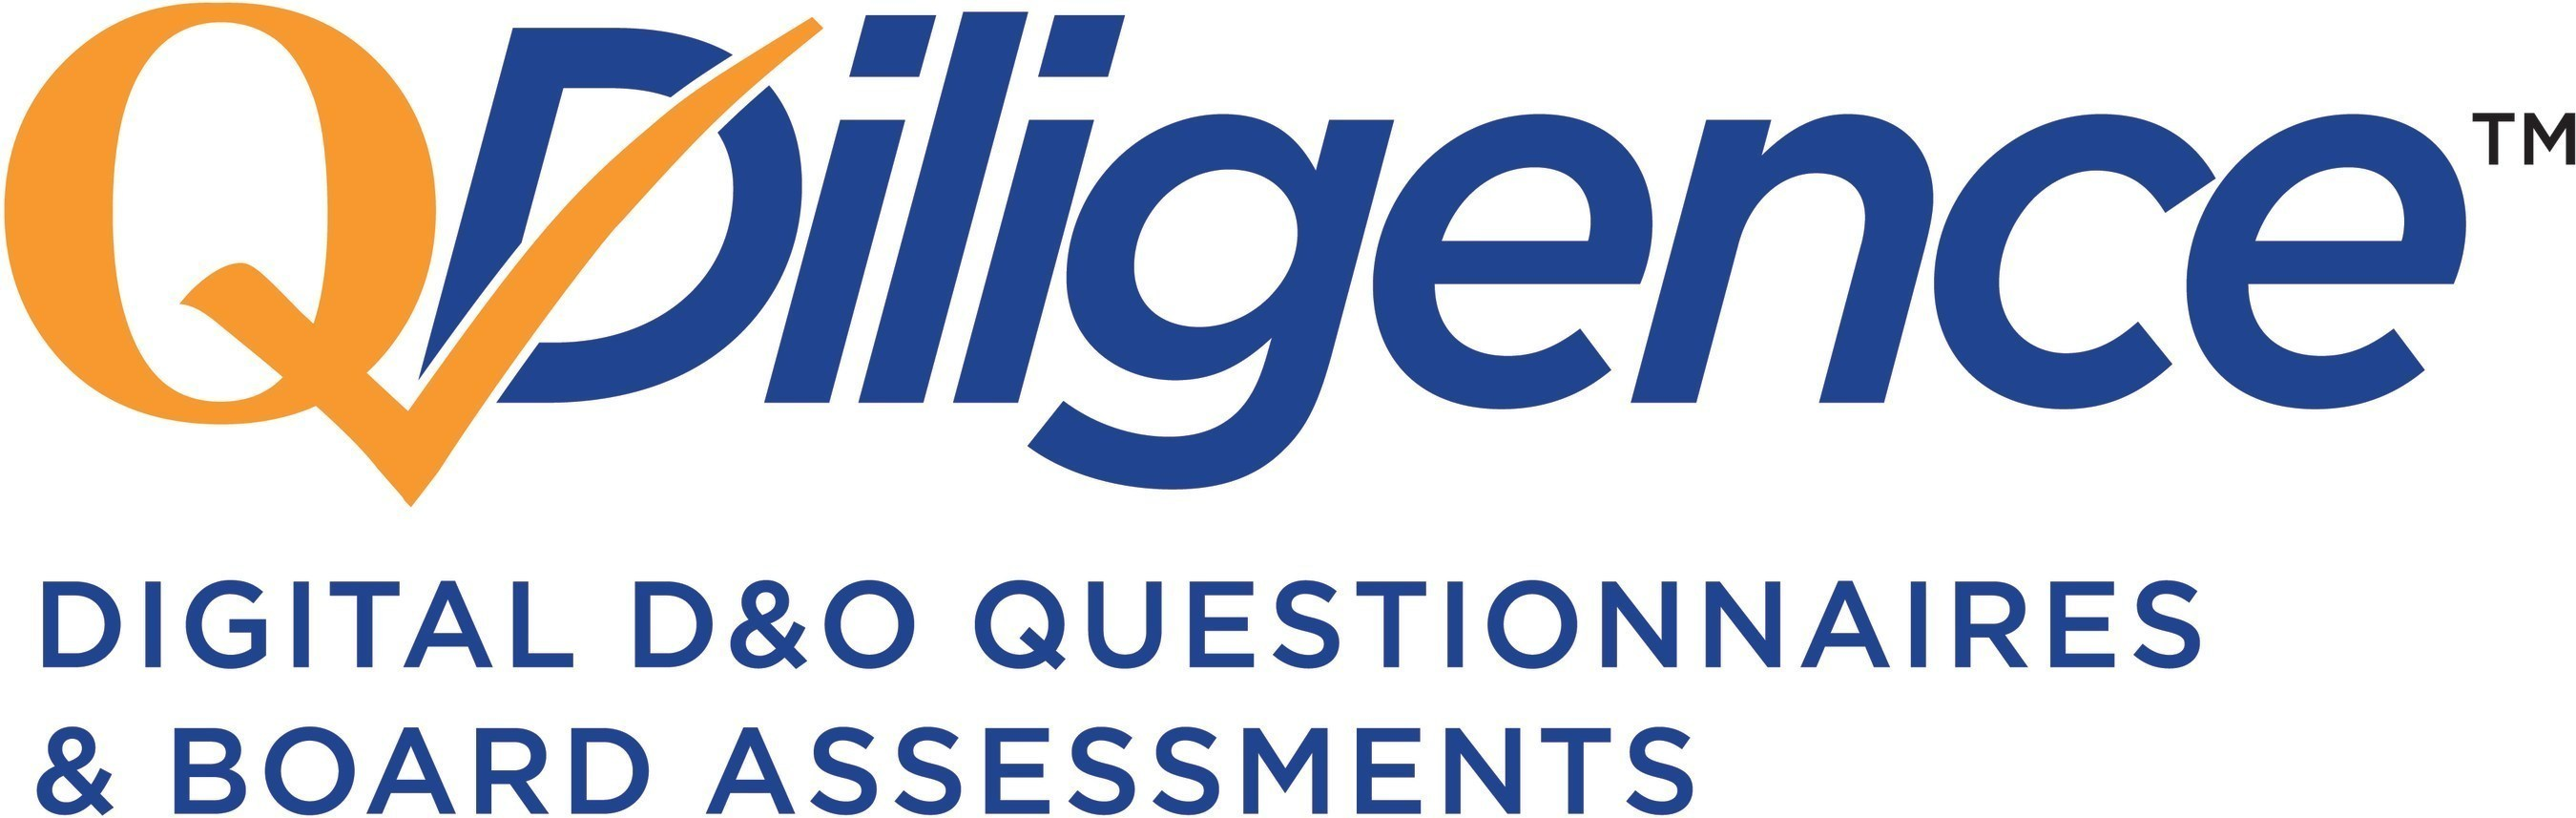 QDiligence Digital D&O Questionnaires and Board Assessments